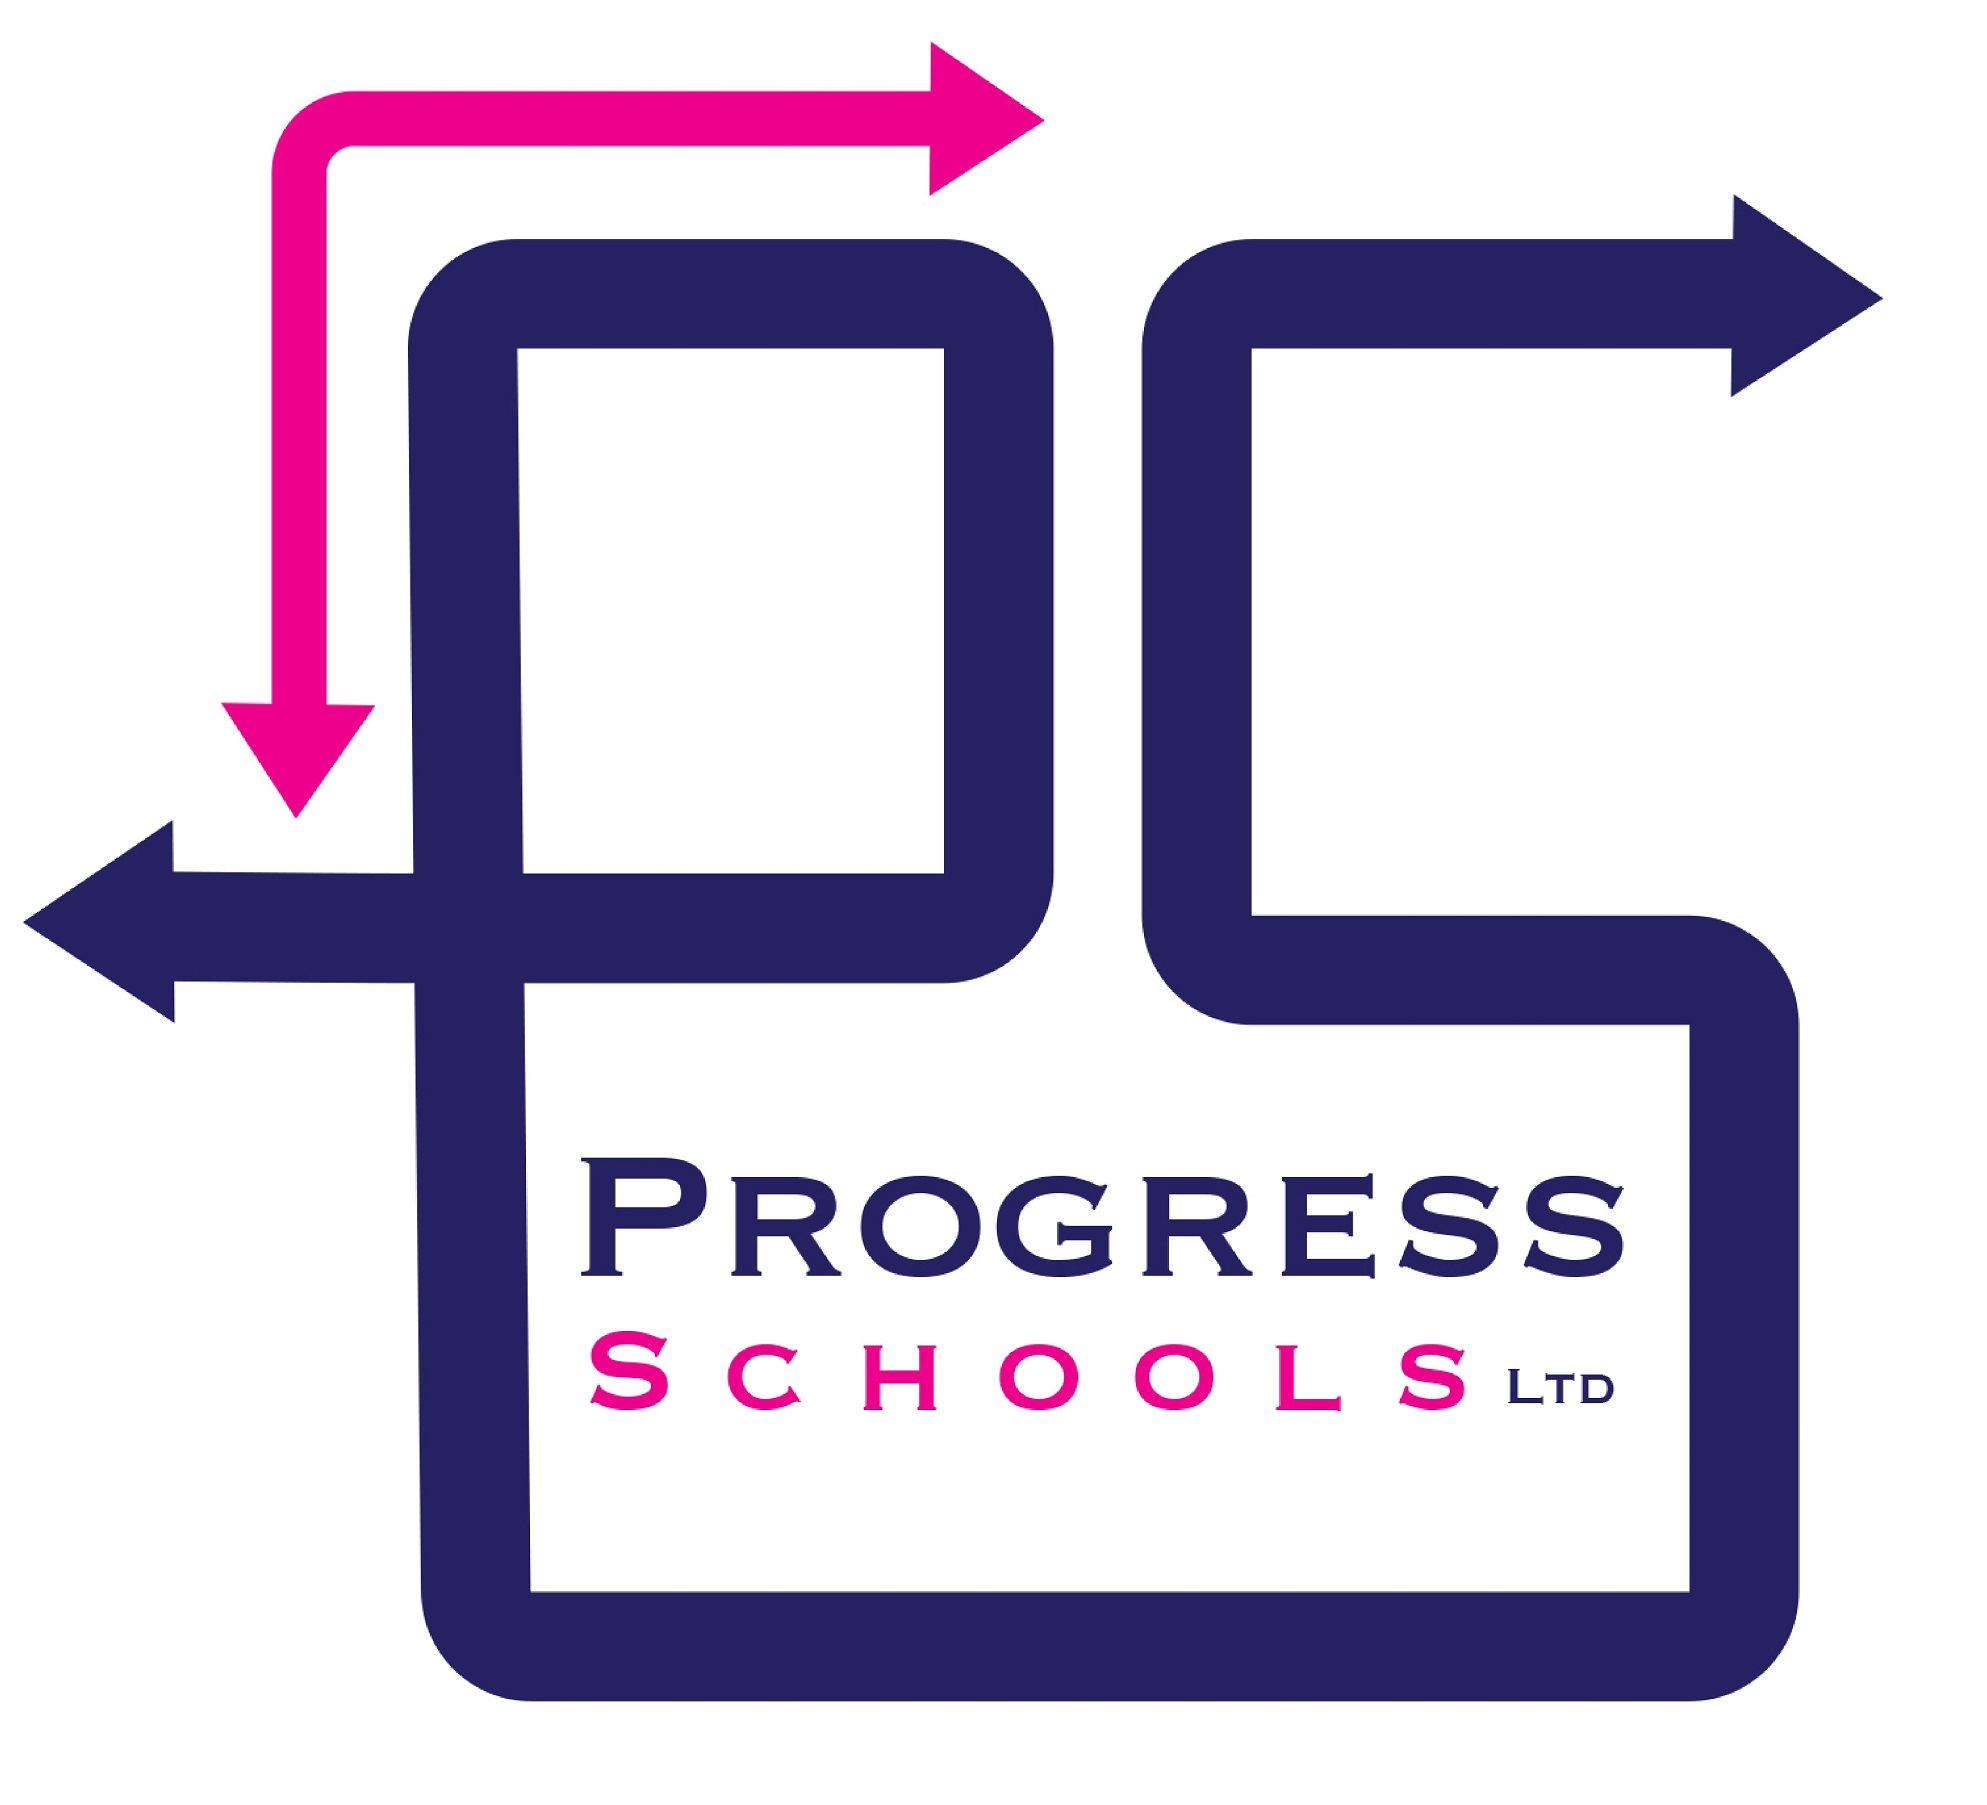 Progress Schools Ltd